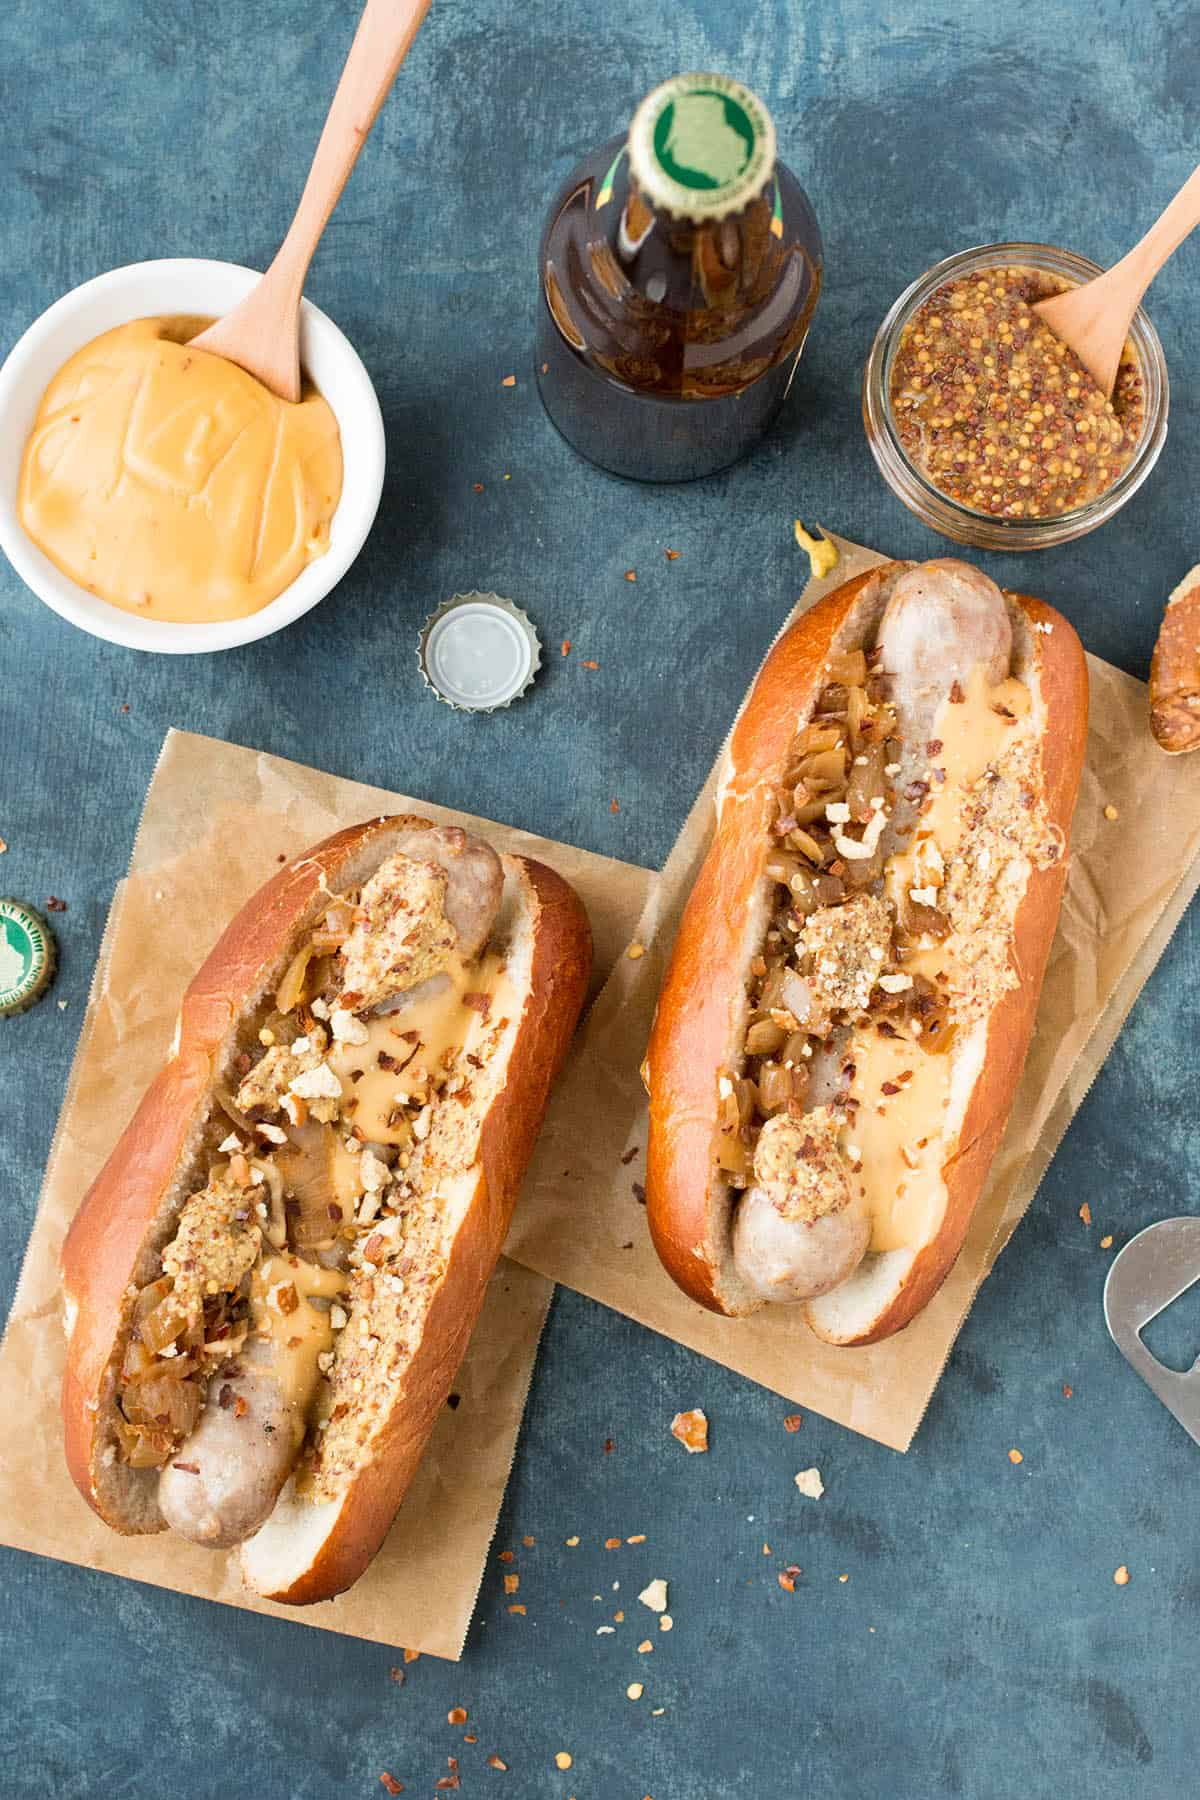 Grilled Beer Brats with Homemade Beer Cheese - Ready to Eat!